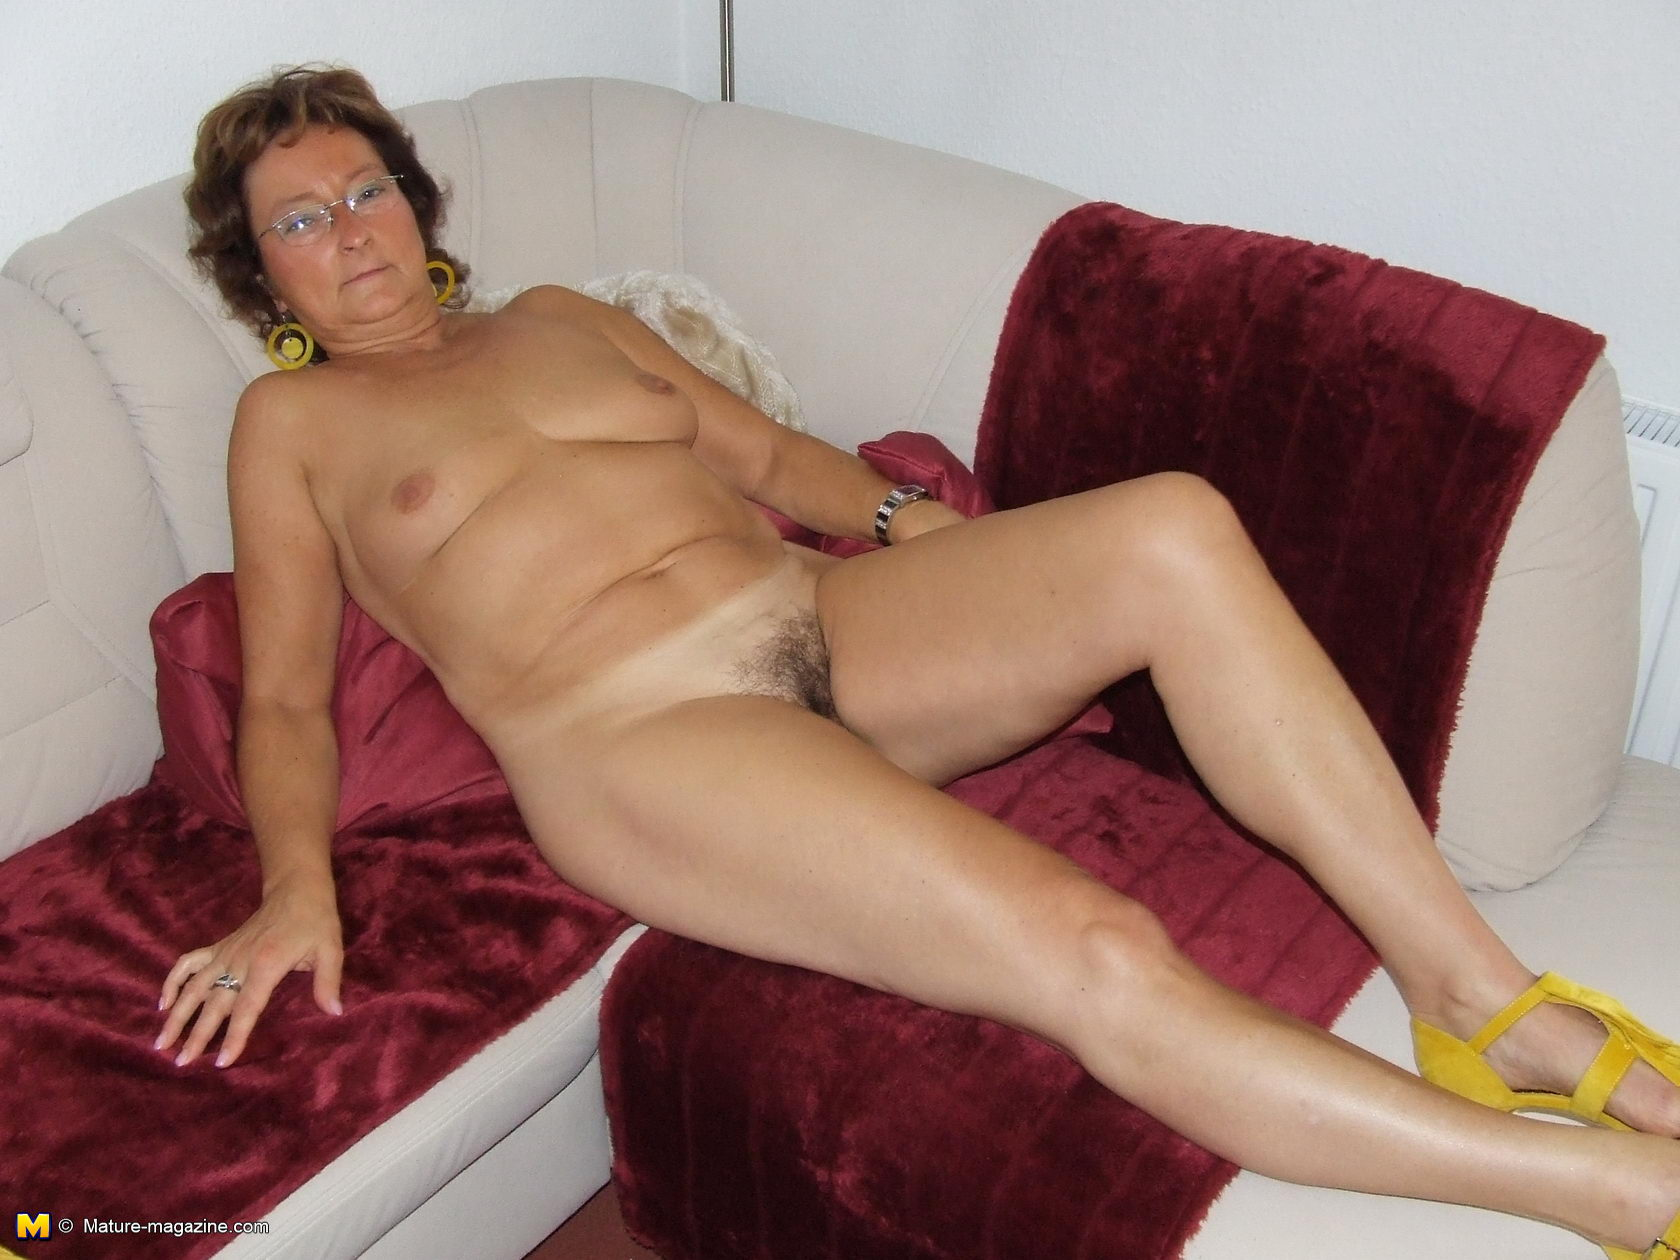 Something Hairy nude mom